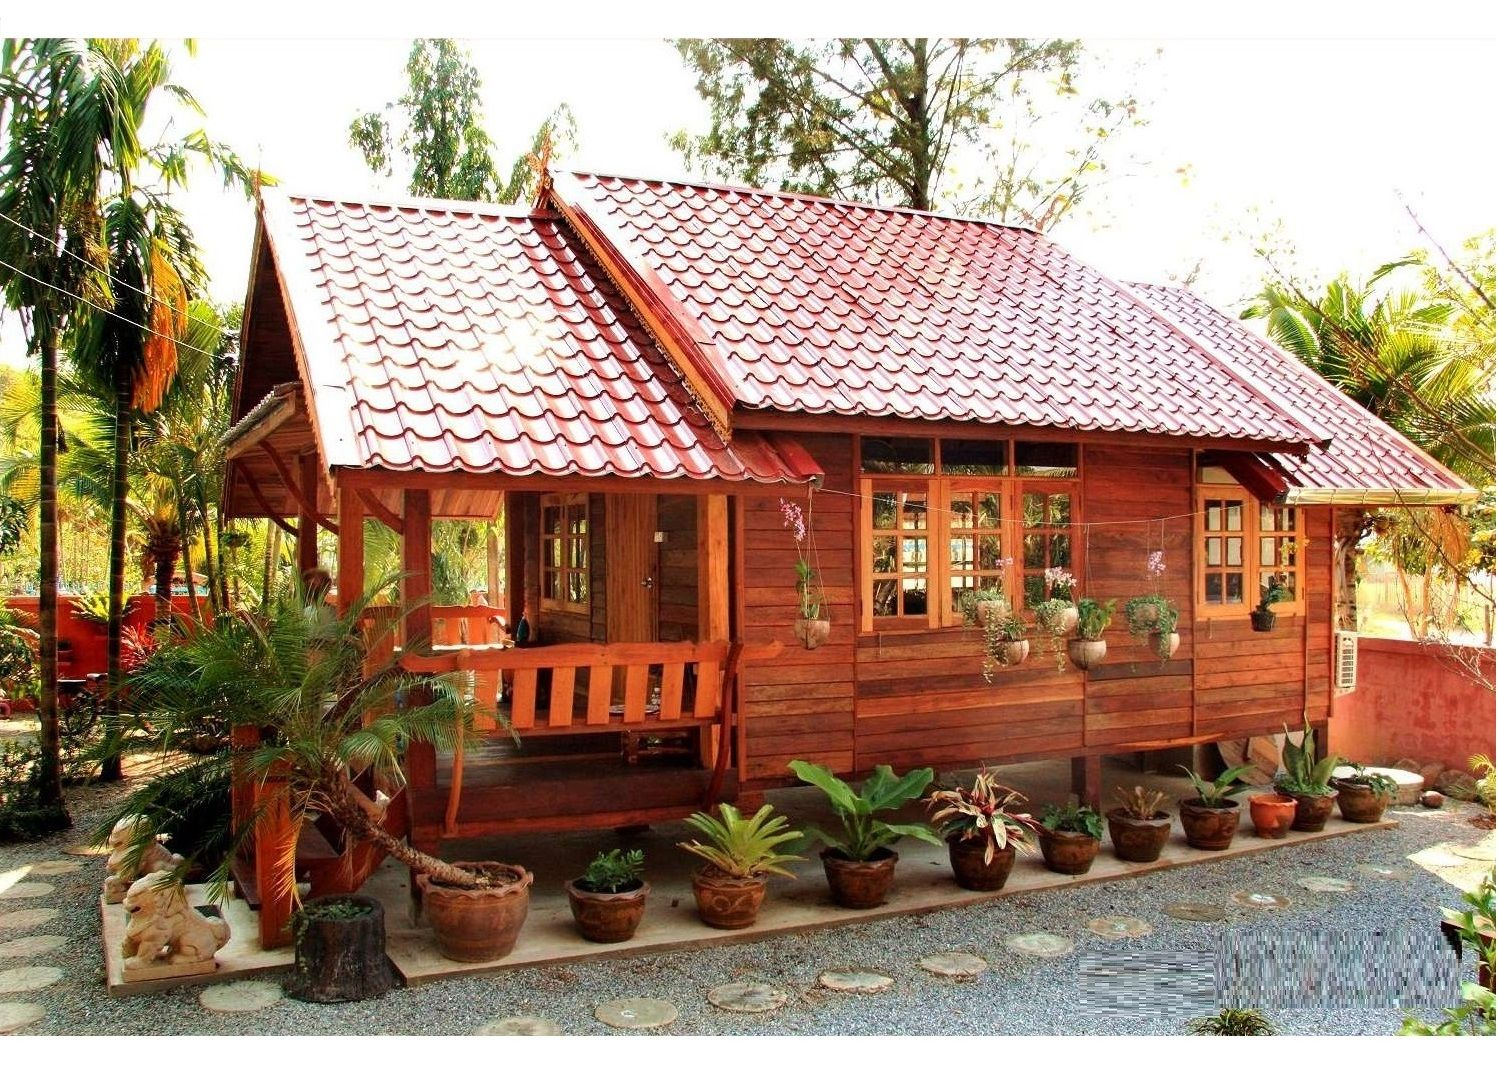 Ph wooden house in philippines also bedroom budget typical traditional home for lakhs rh pinterest